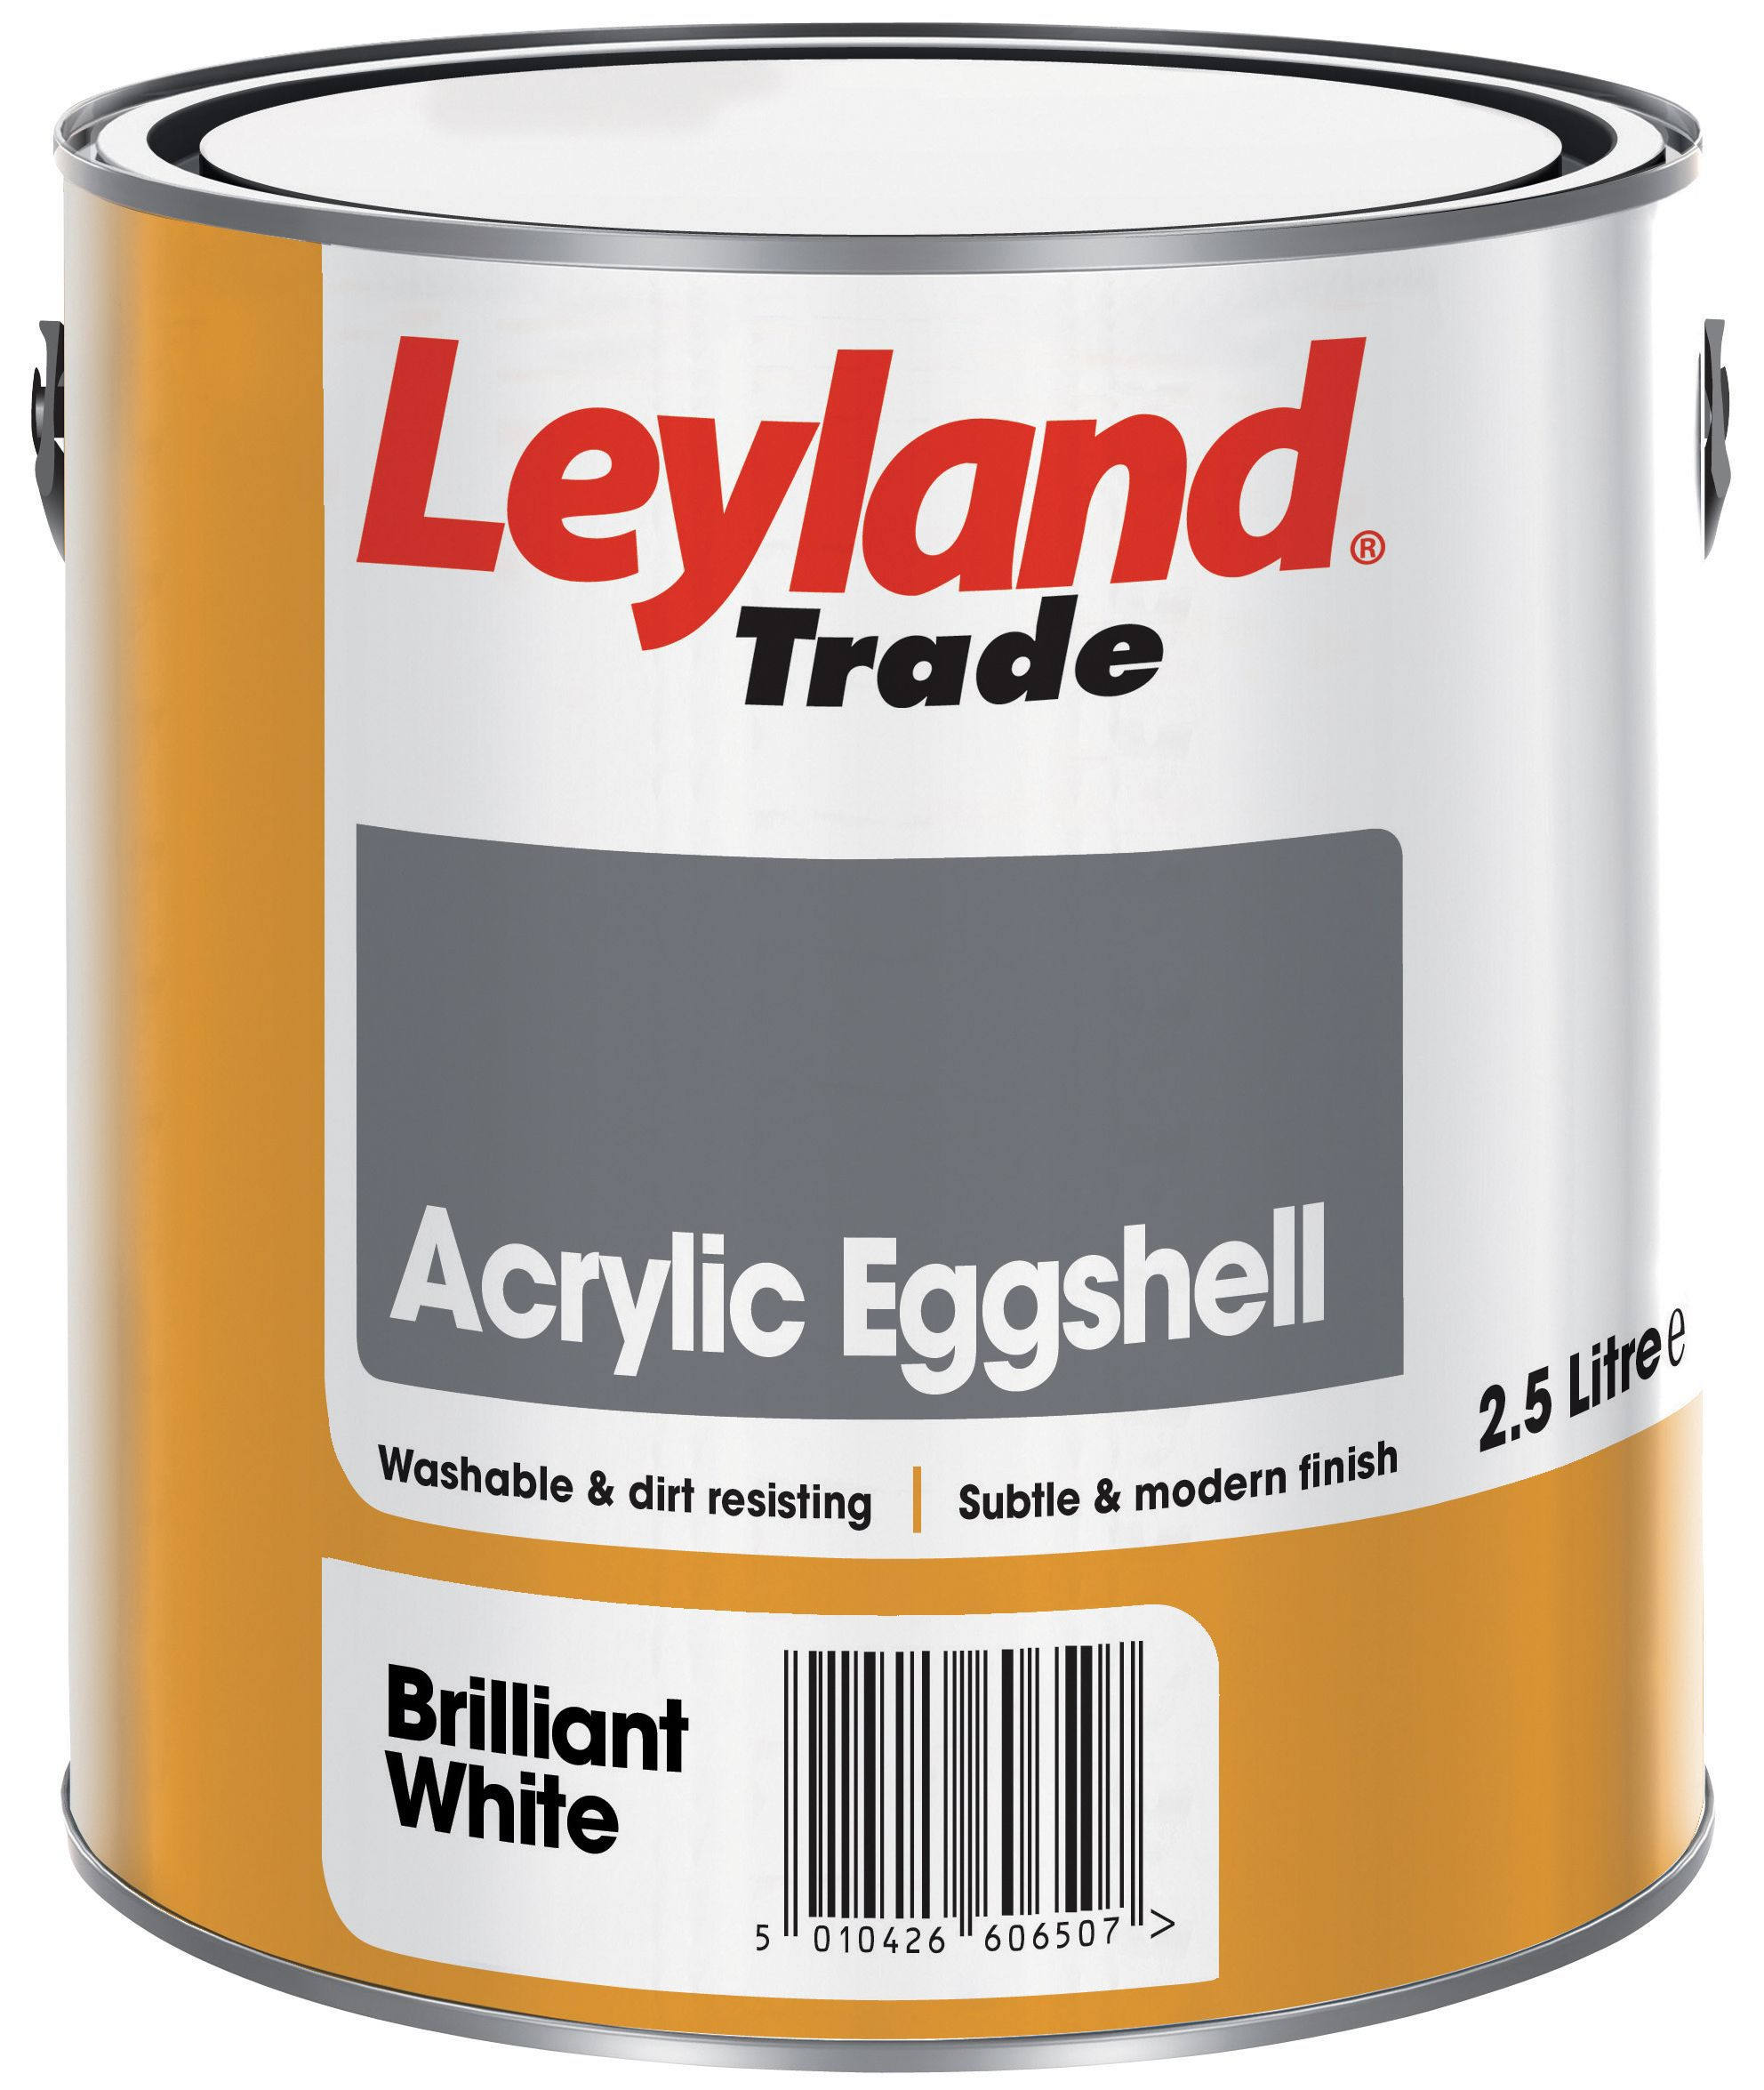 Leyland Trade Brilliant White Eggshell Emulsion Paint Departments Diy At B Q